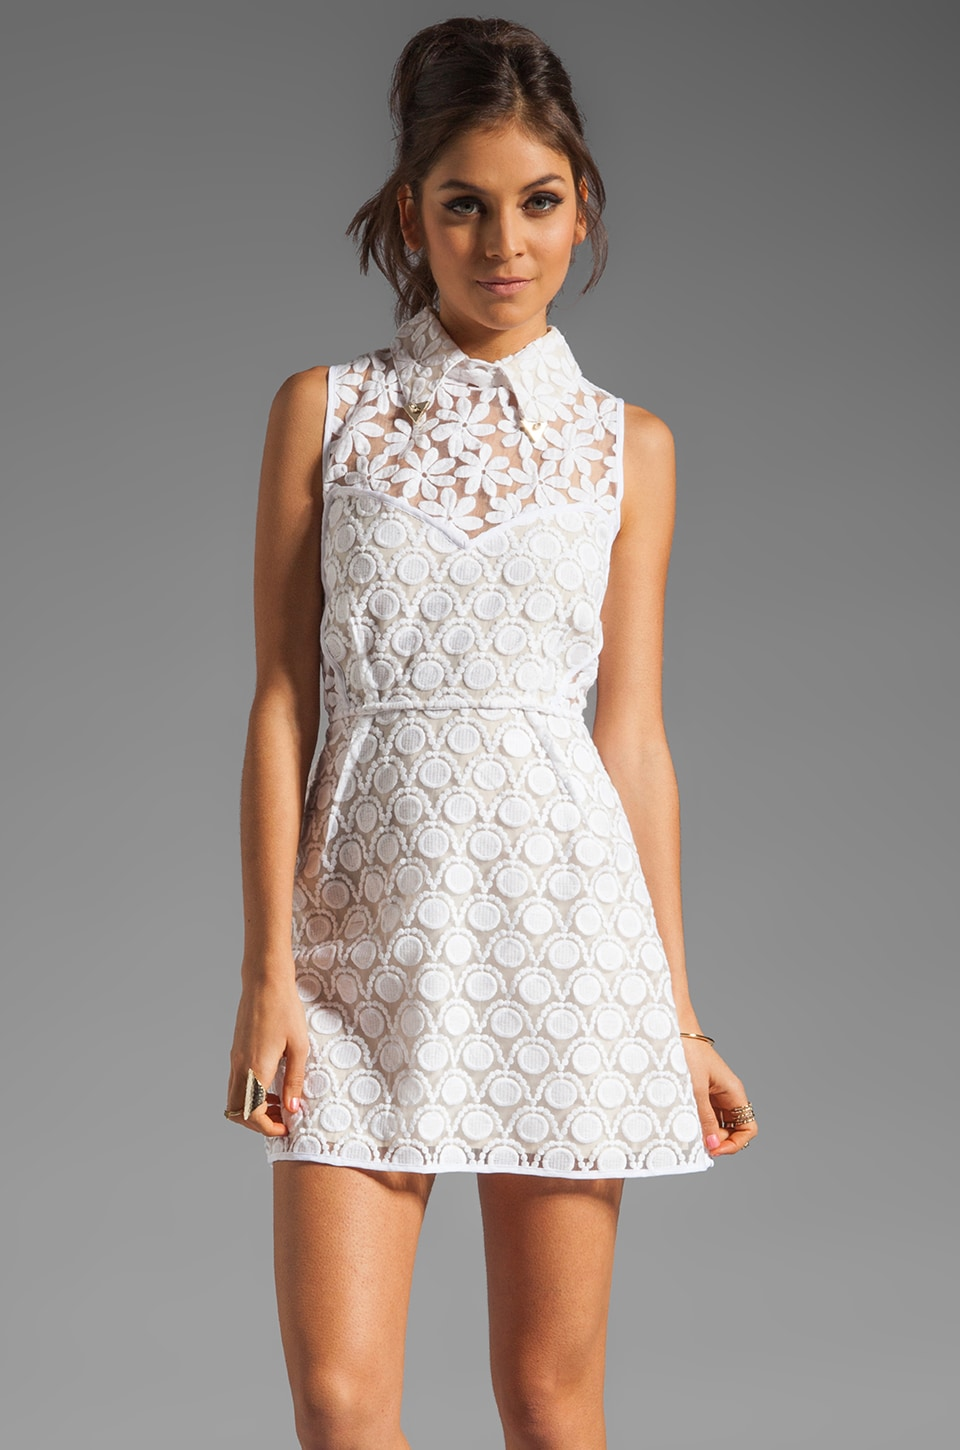 Shakuhachi New Romantics Collared Party Dress in White